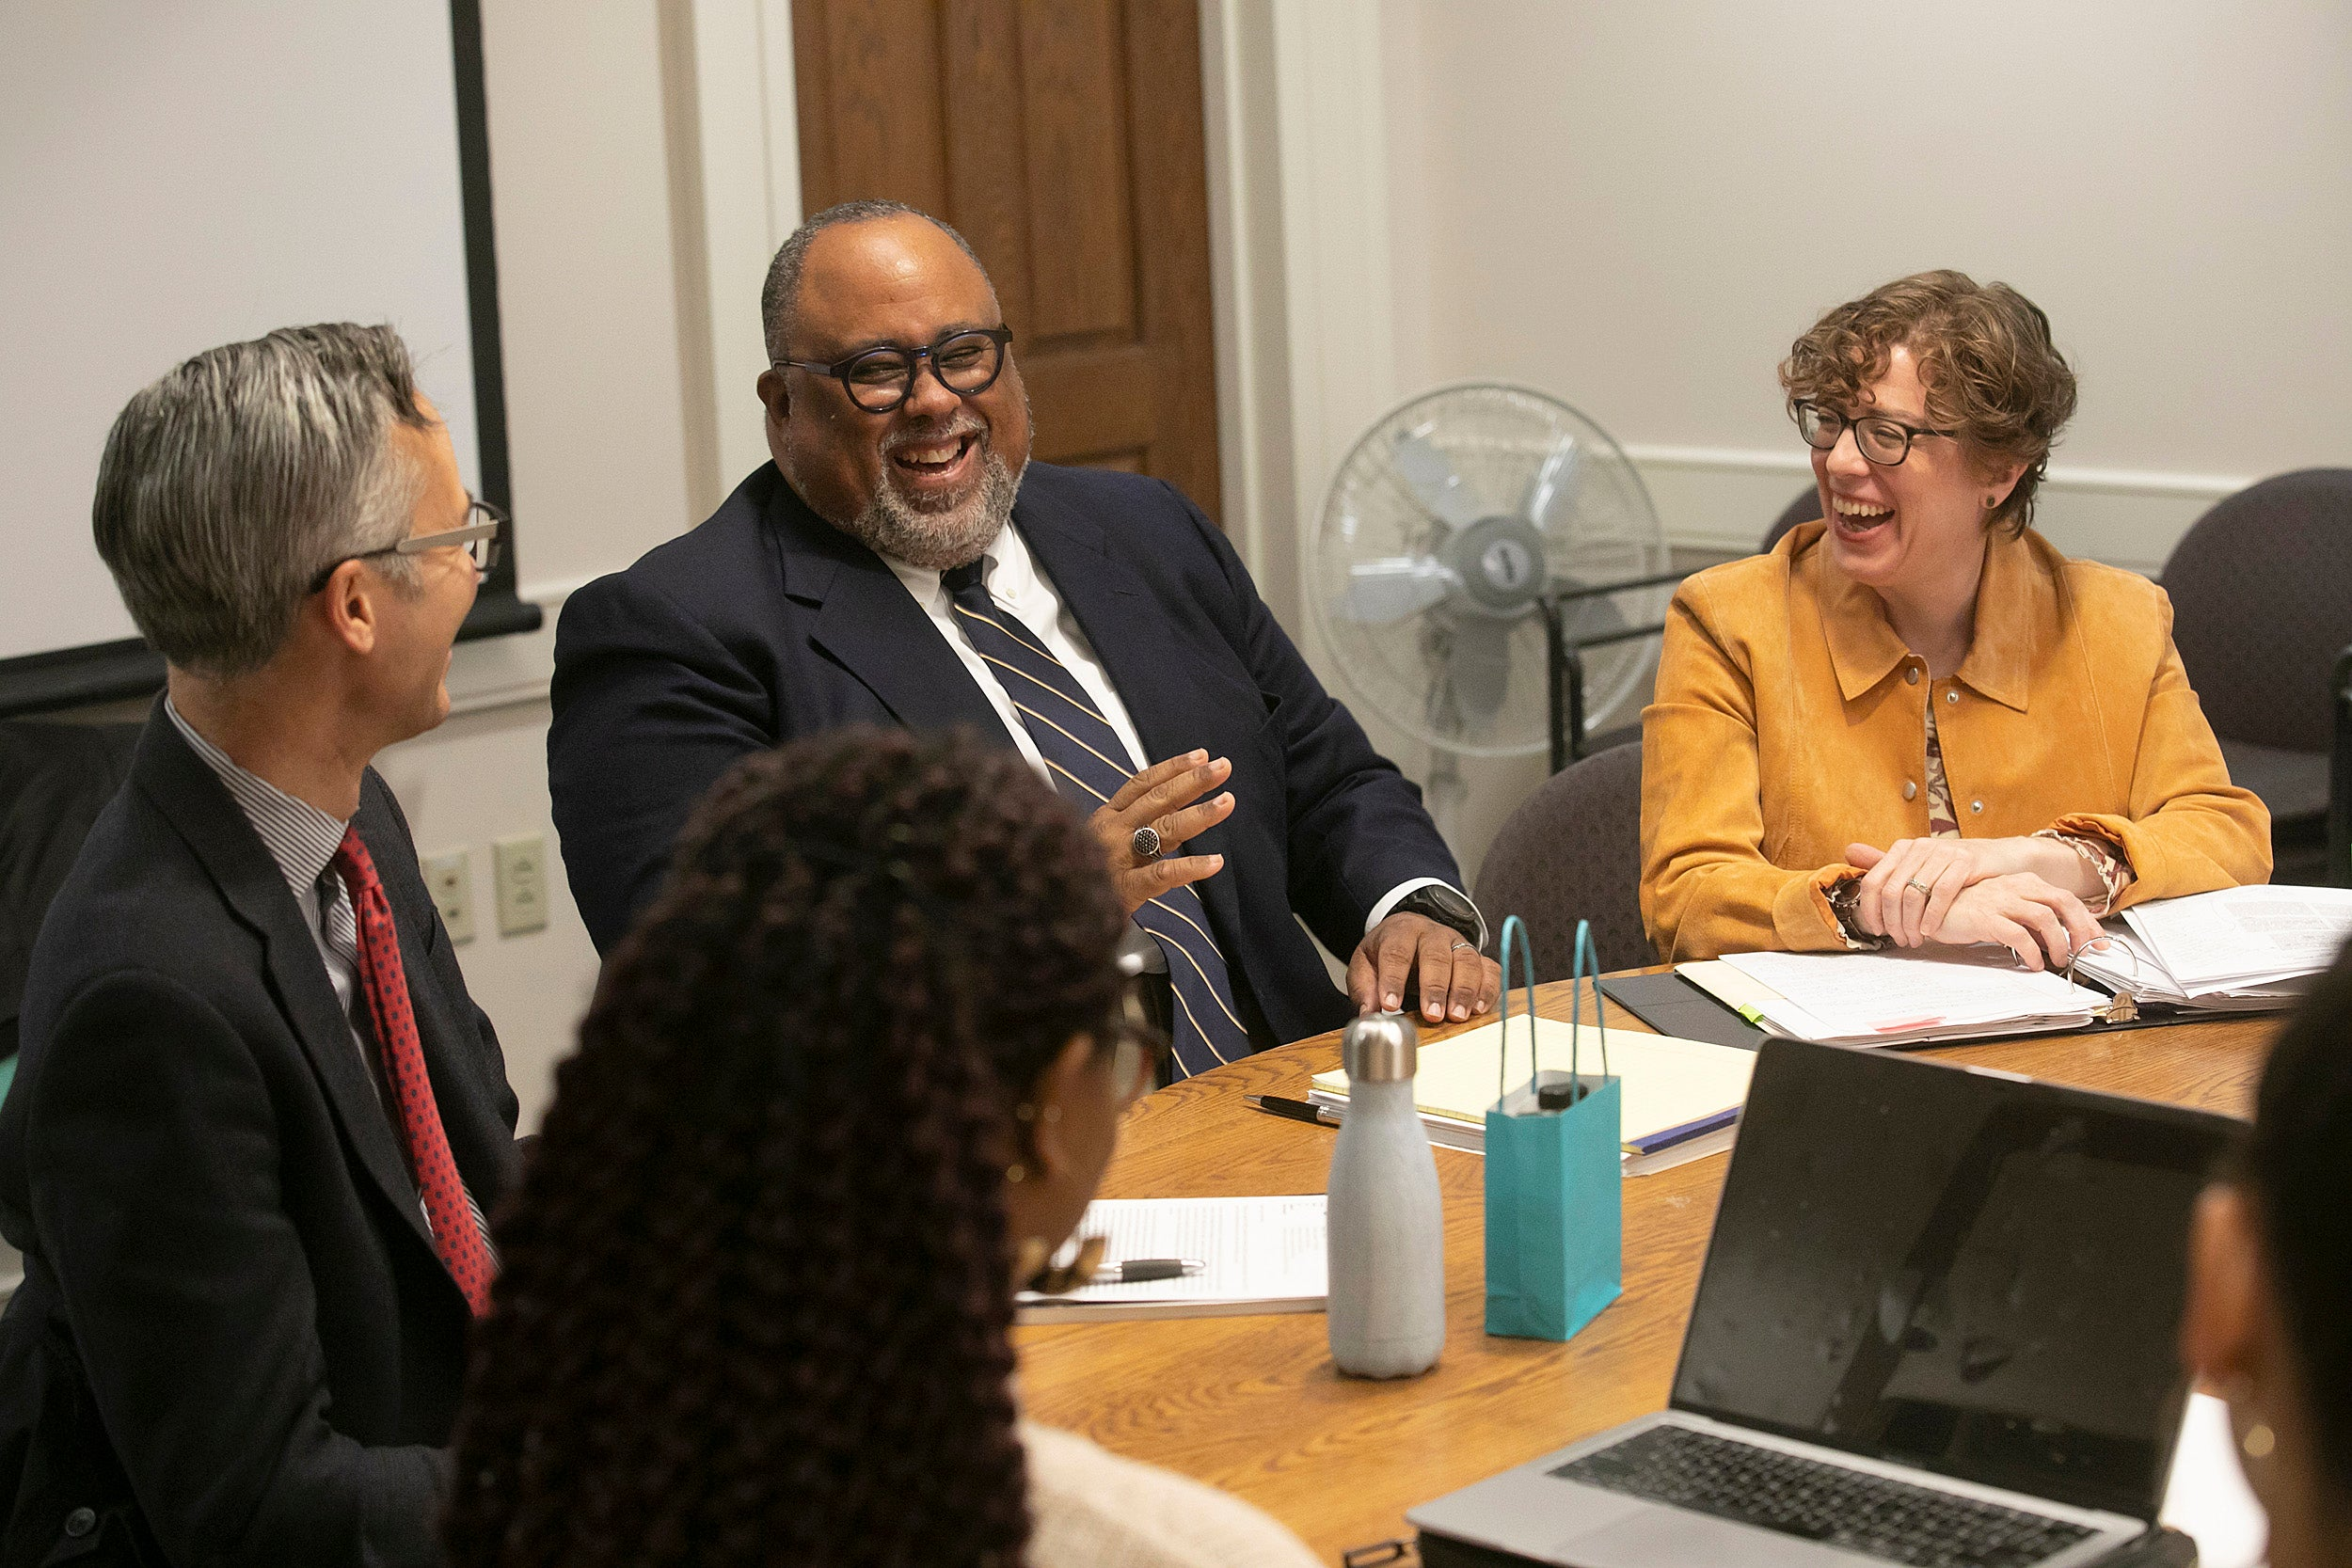 Four people laugh around a conference table.